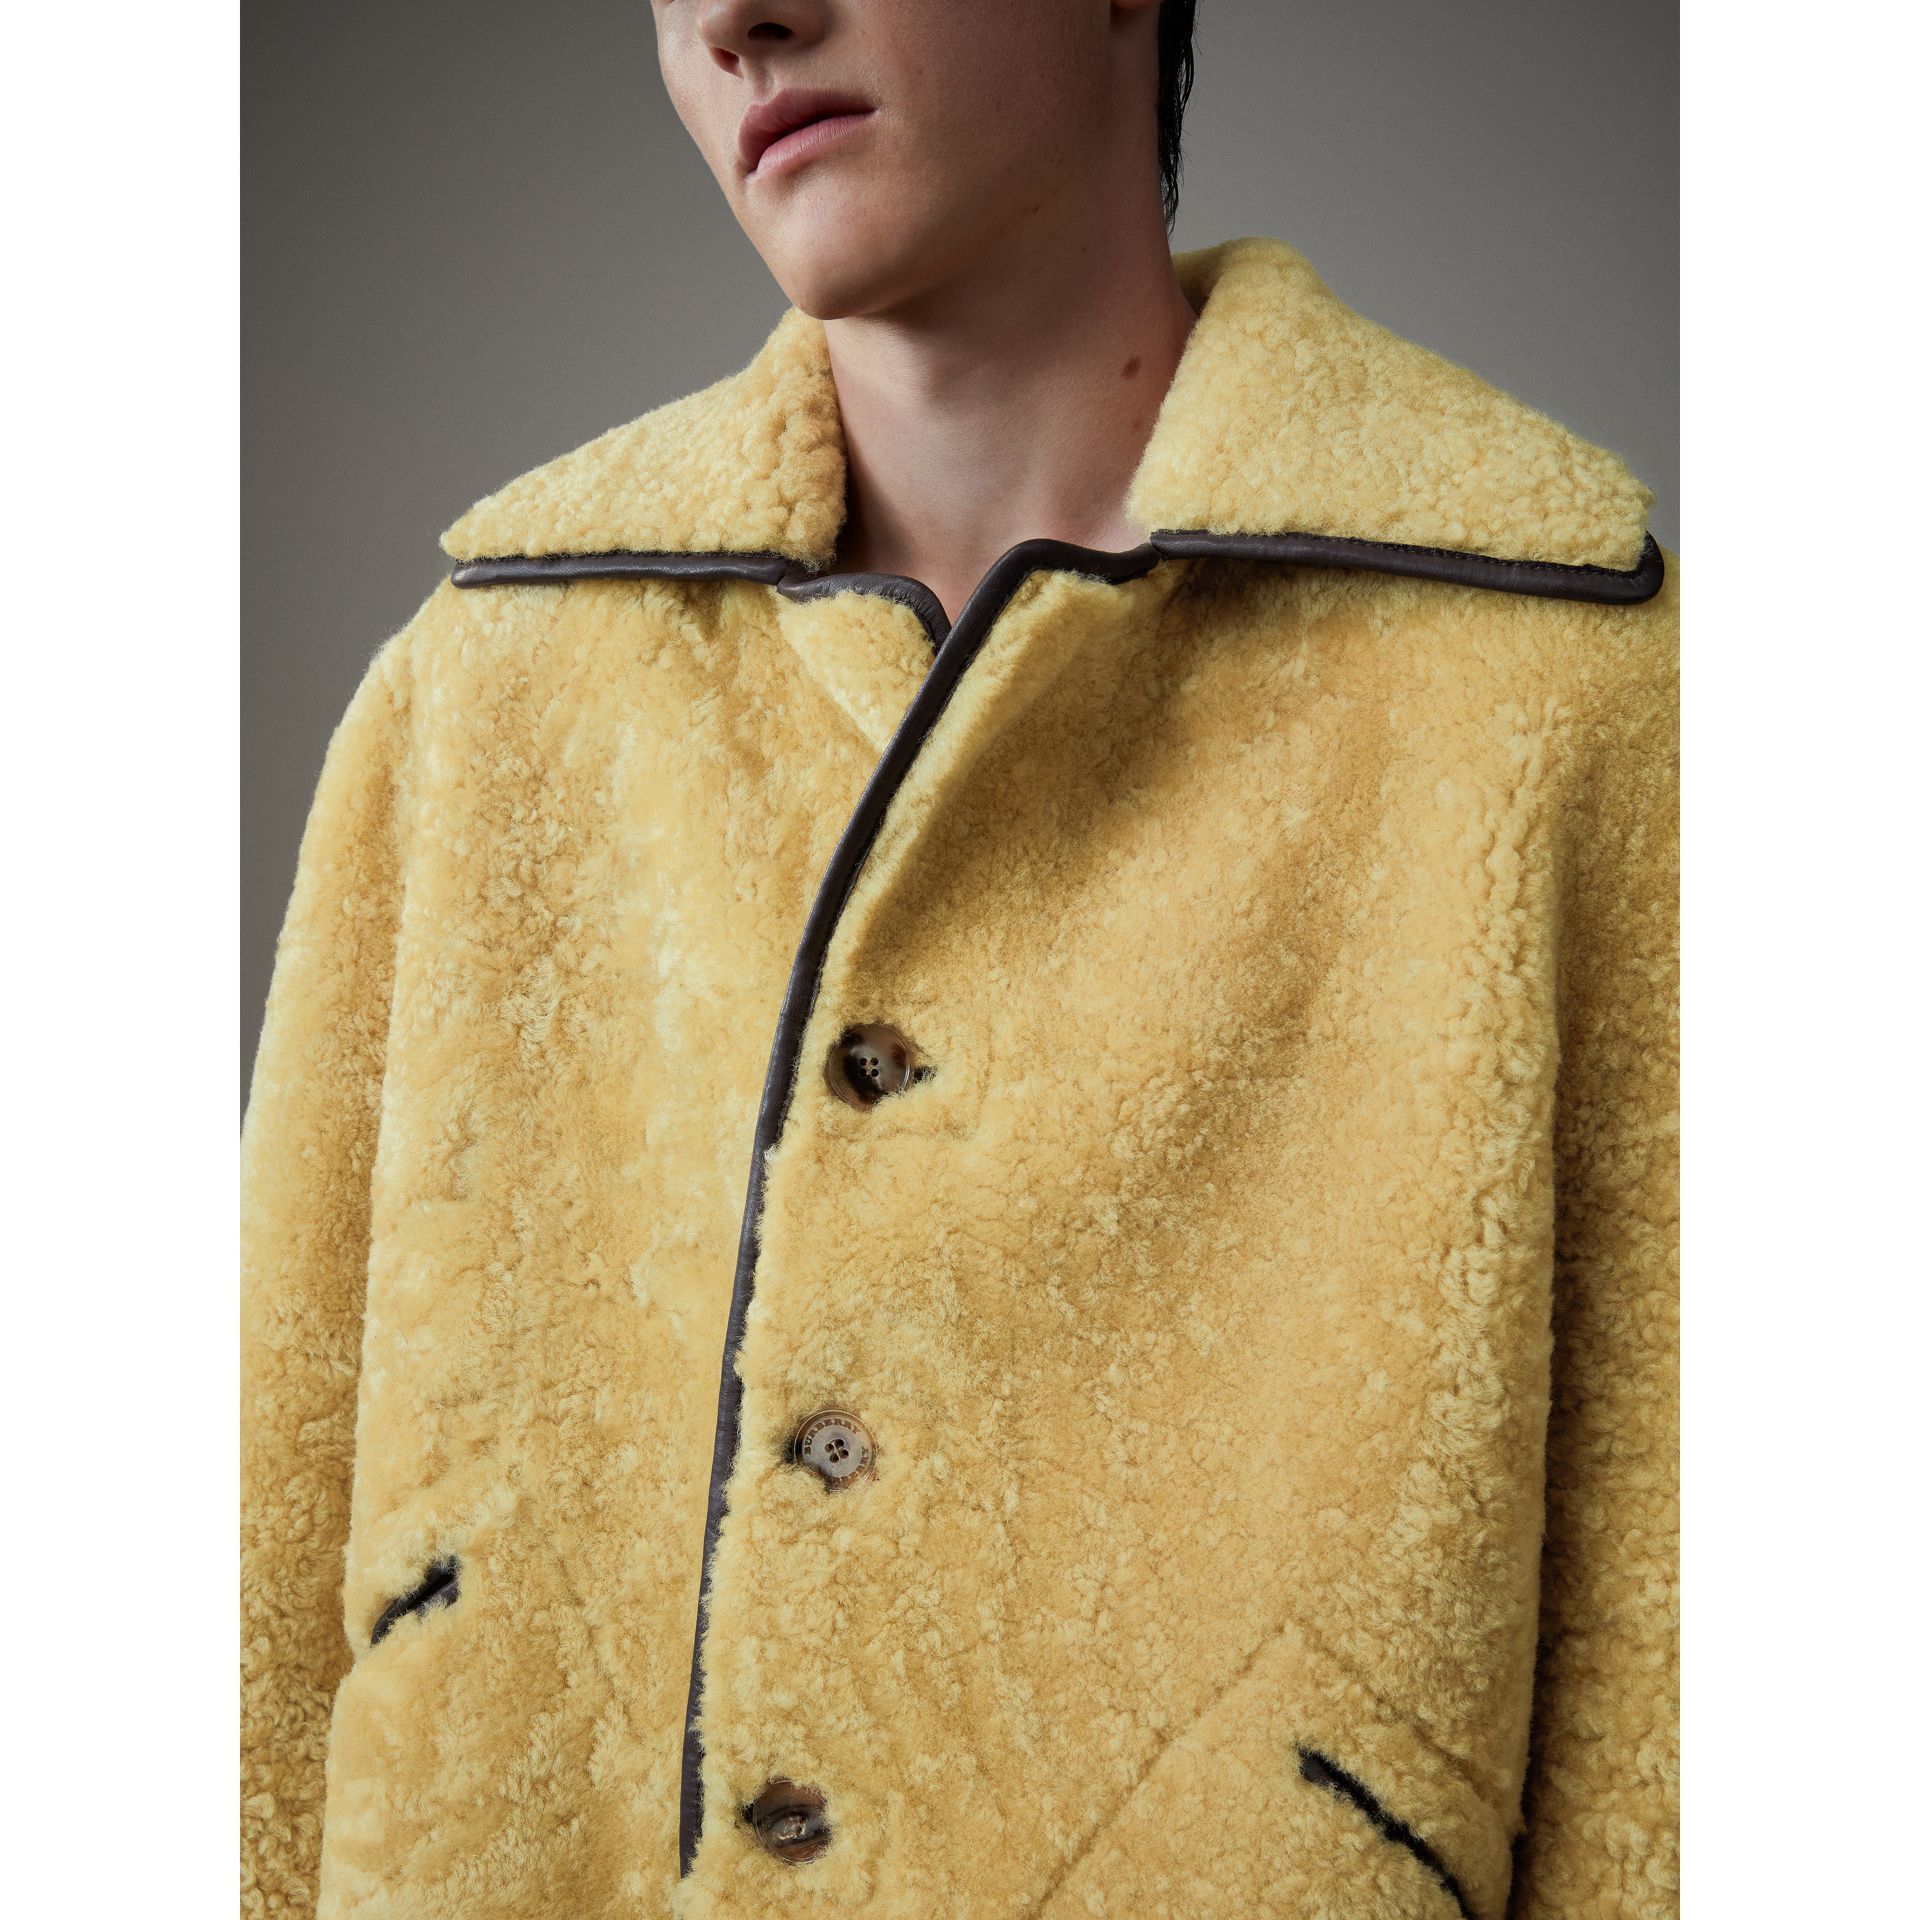 Relaxed Fit Shearling and Lambskin Jacket in Chocolate/light Citrus - Men | Burberry United States - gallery image 2